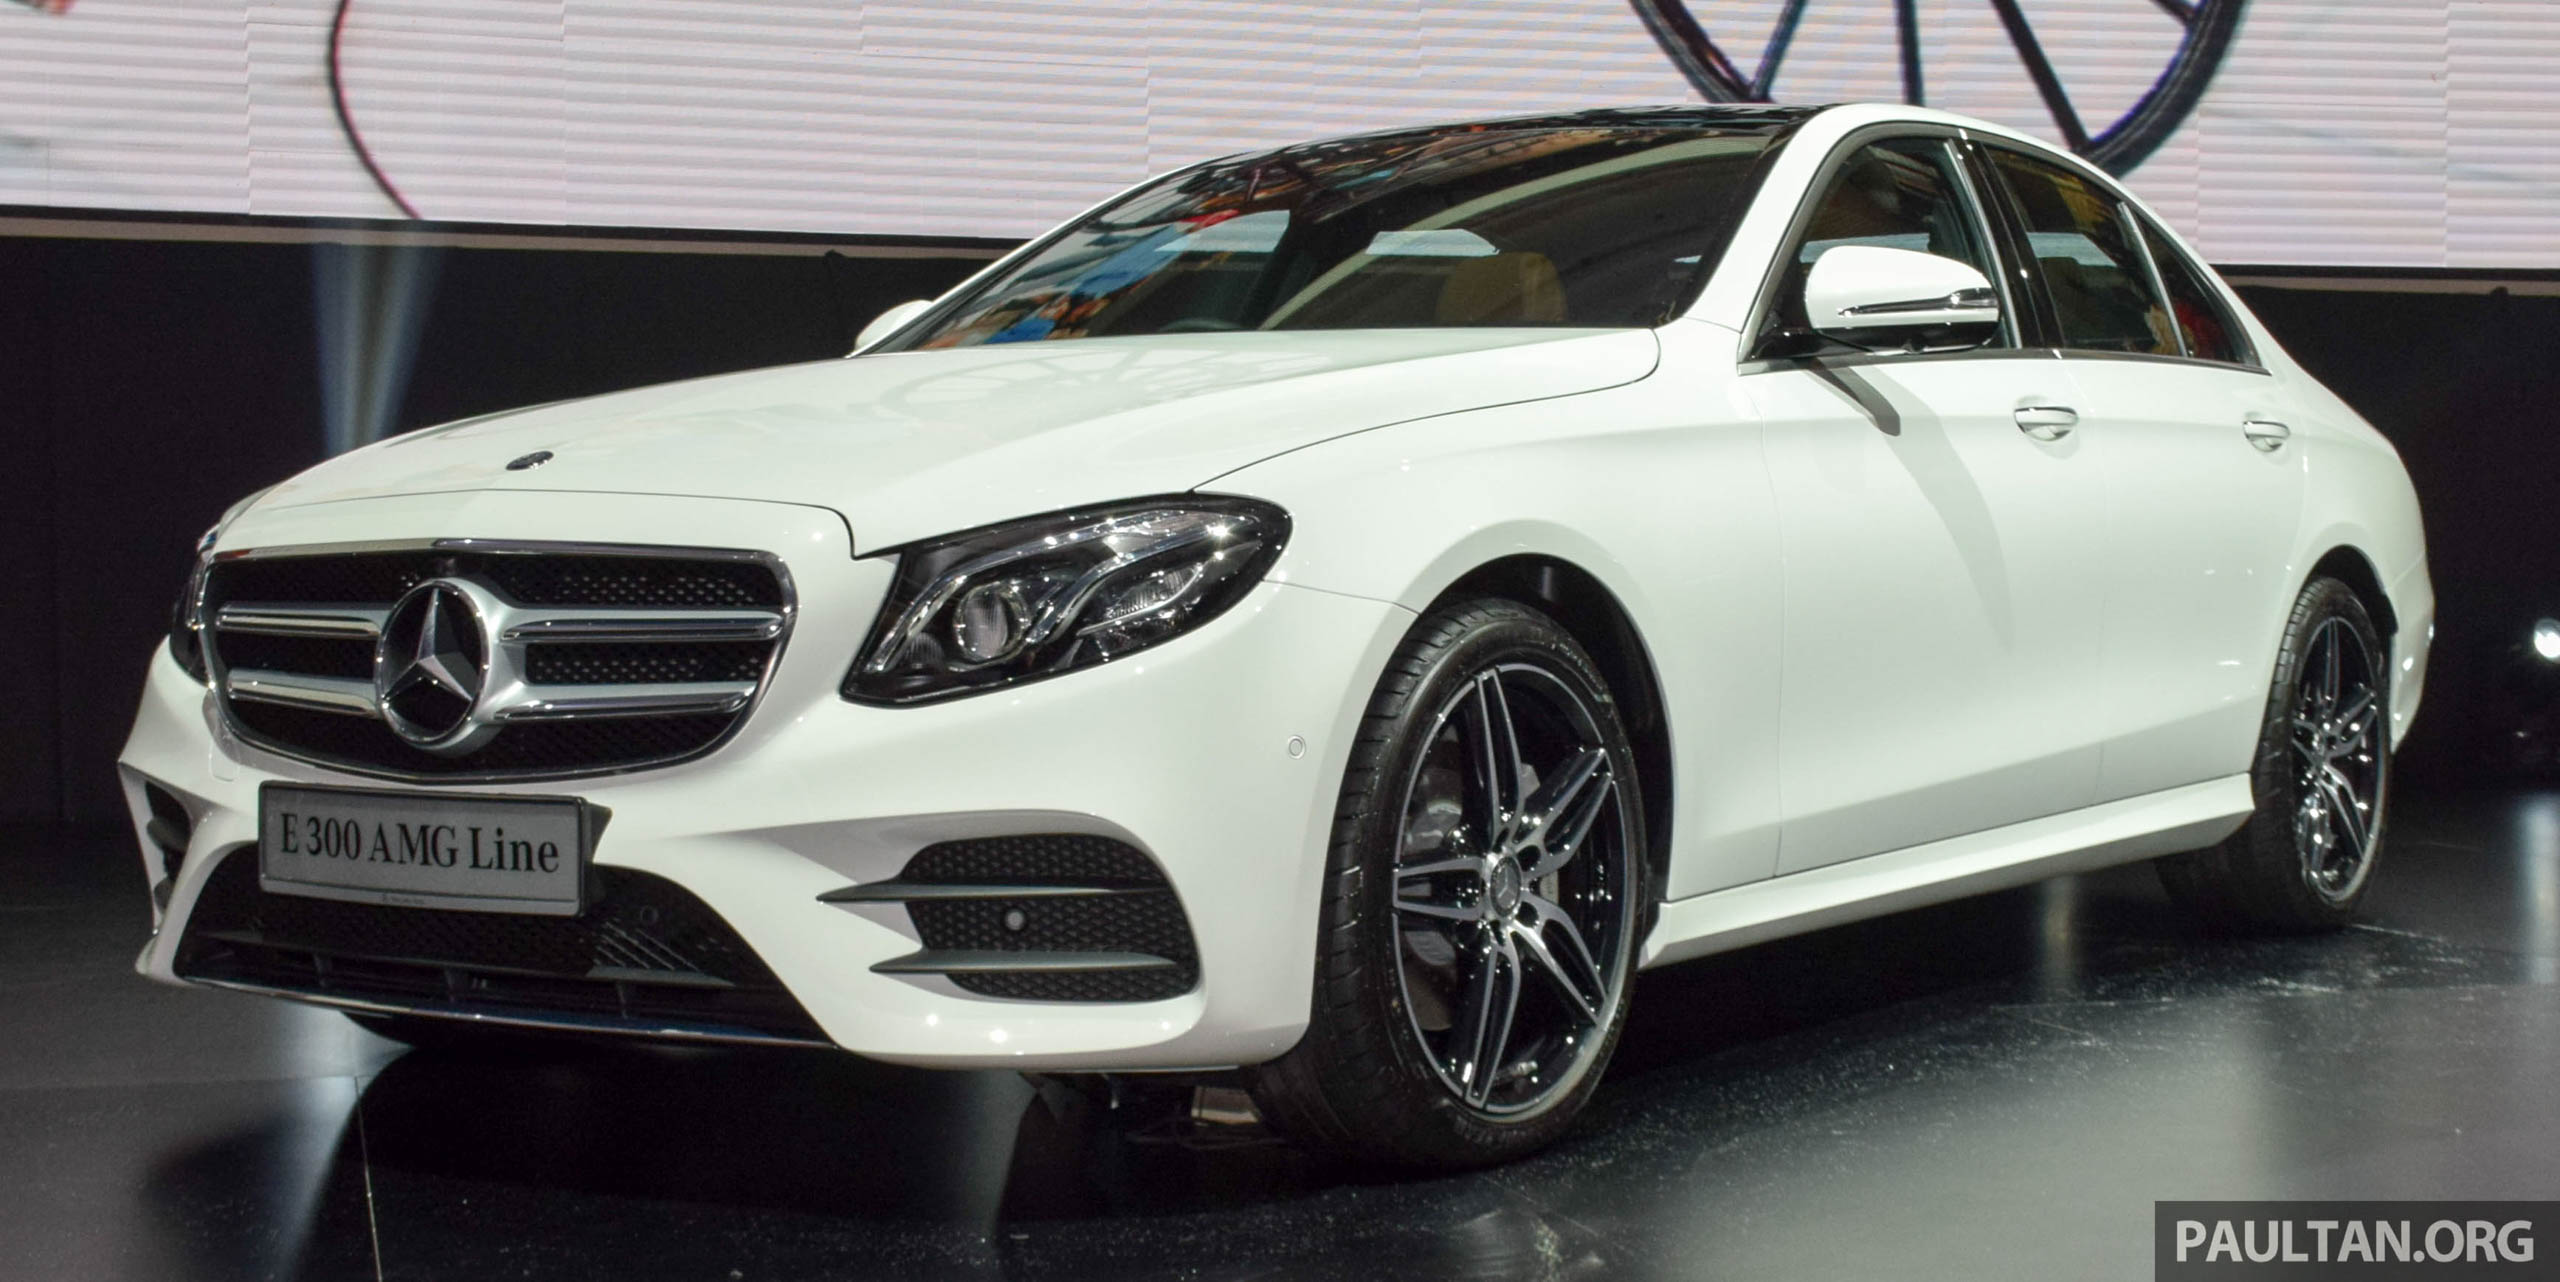 W213 mercedes benz e300 amg line malaysian price confirmed for Mercedes benz malaysia